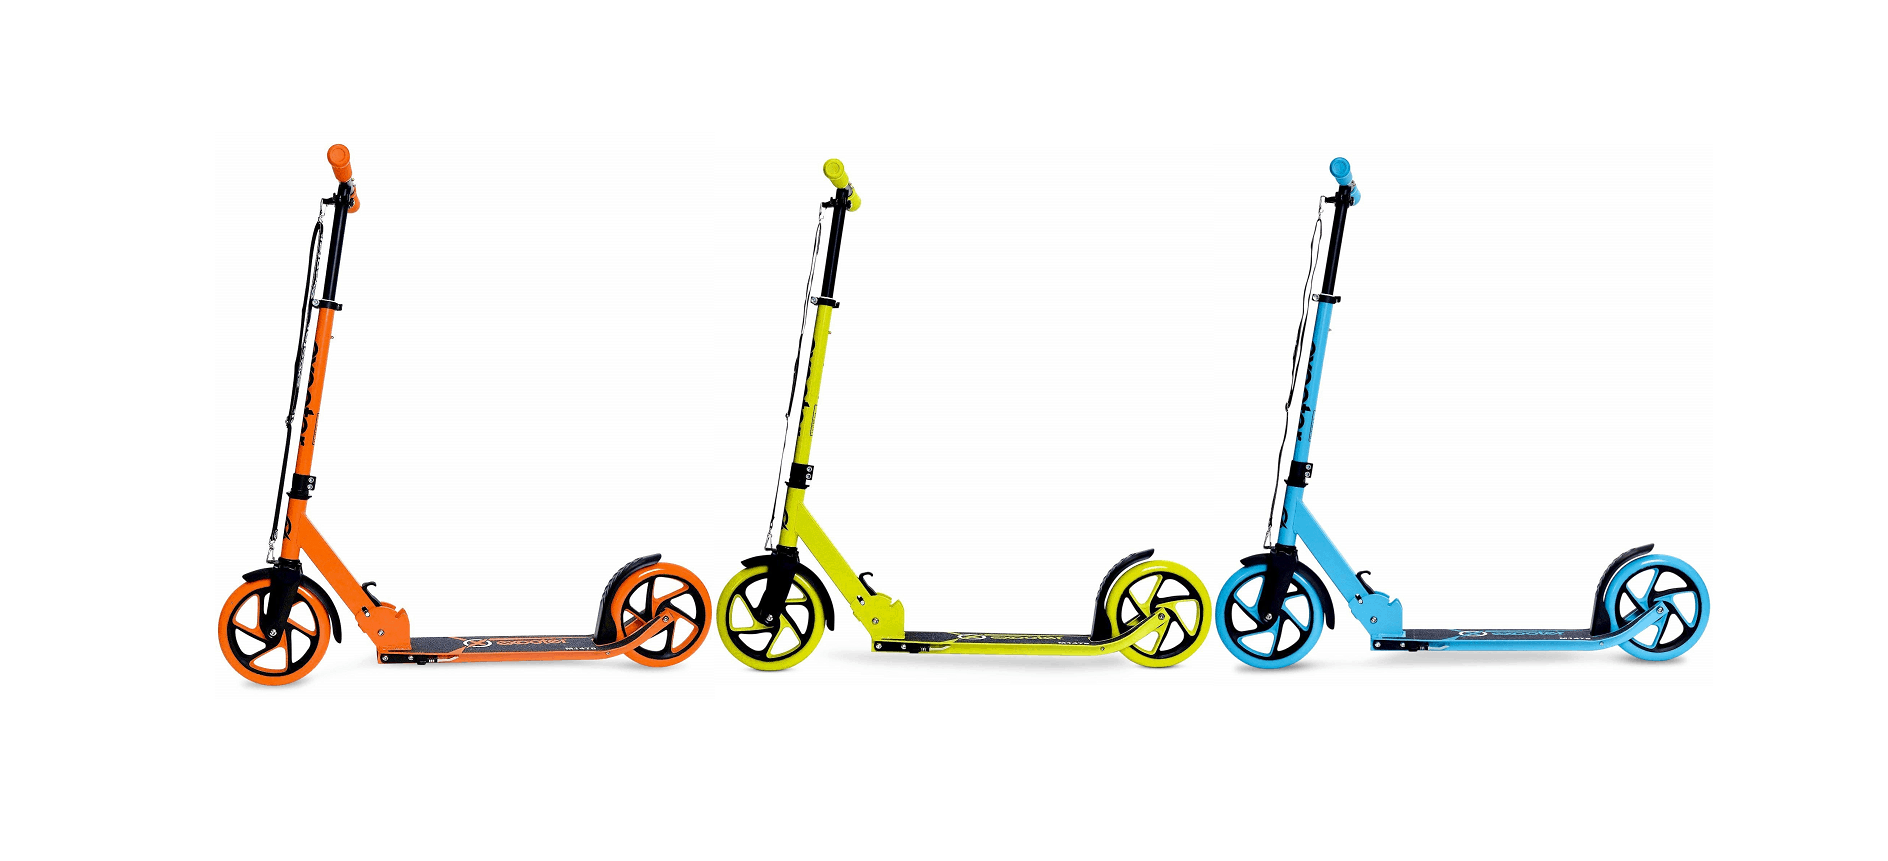 Kids Kick Scooter by Exooter